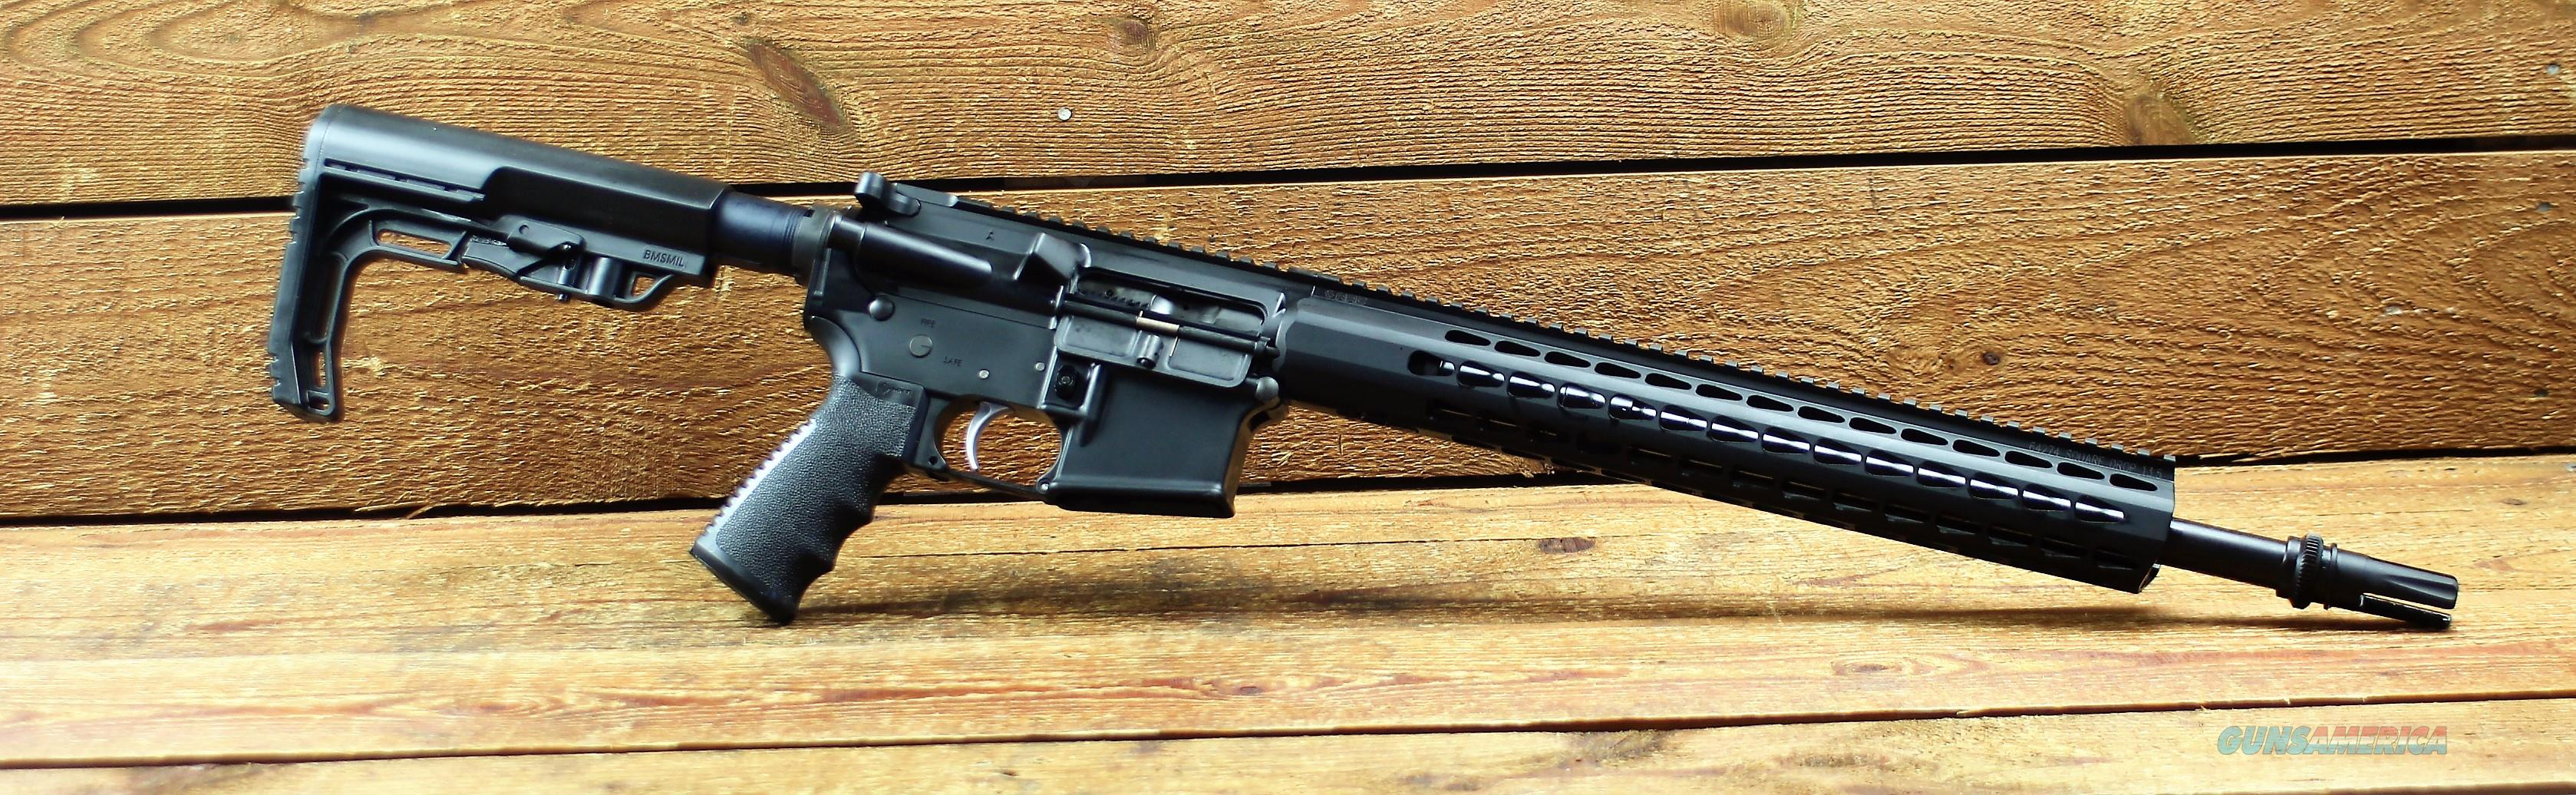 "BUSHMASTER MINIMALIST AR-15 AR15 SD A3 .300 AAC 16""Mil-Spec Carbine Direct Impingement  90924 EASY PAY $89  Guns > Rifles > Bushmaster Rifles > Complete Rifles"